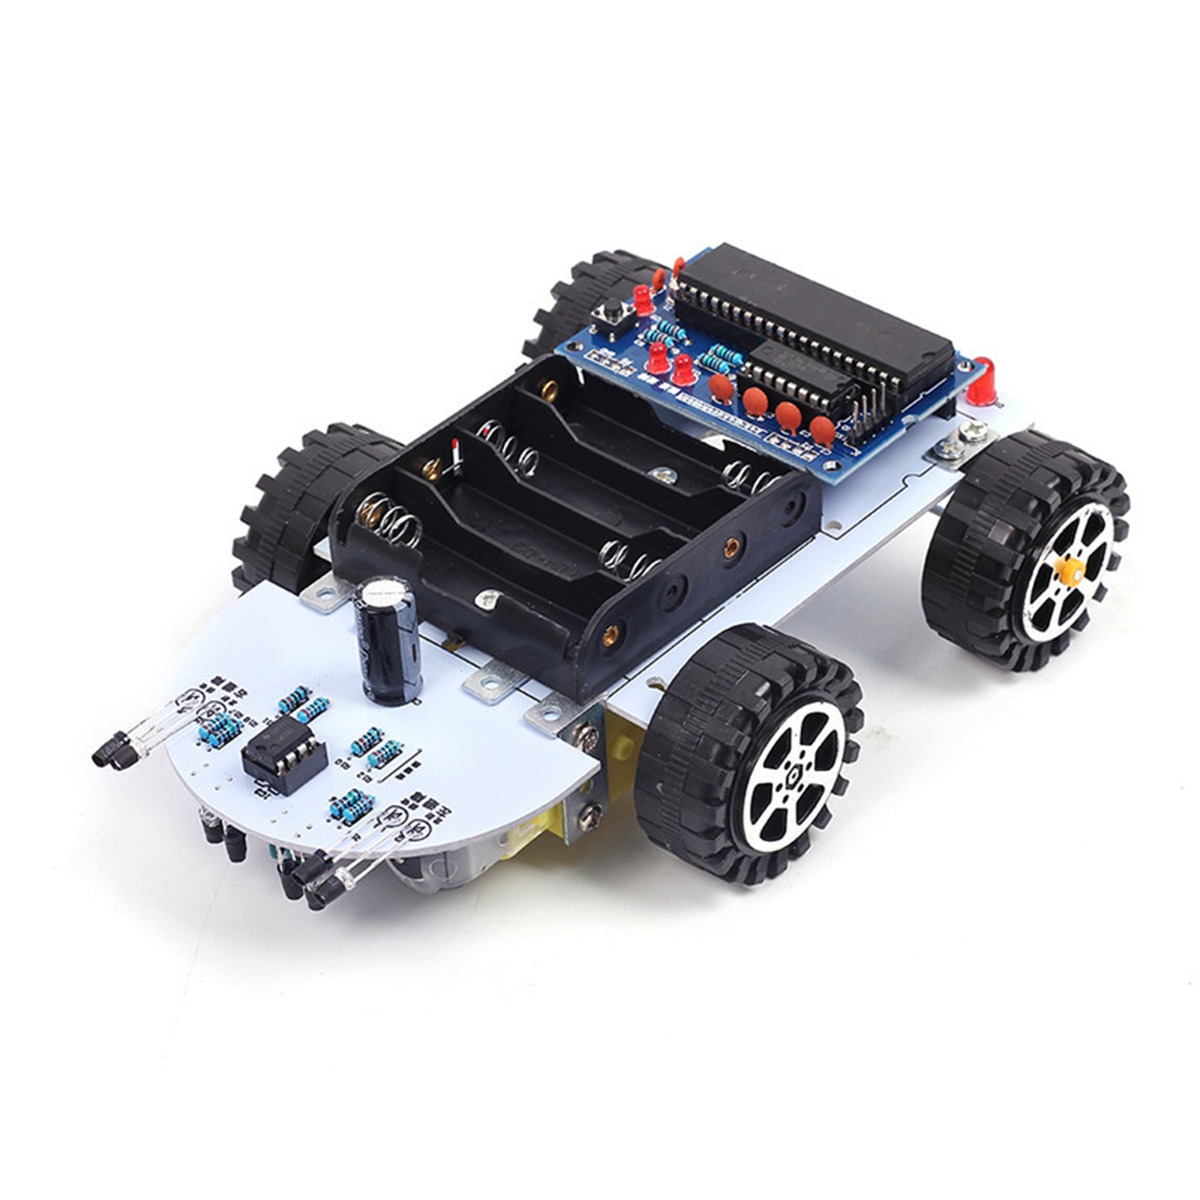 C51 DC 6V Intelligent Tracking Obstacle Car DIY Kit With Two Single Axis Gear Motor Drives Electronics Production Machinery Gift